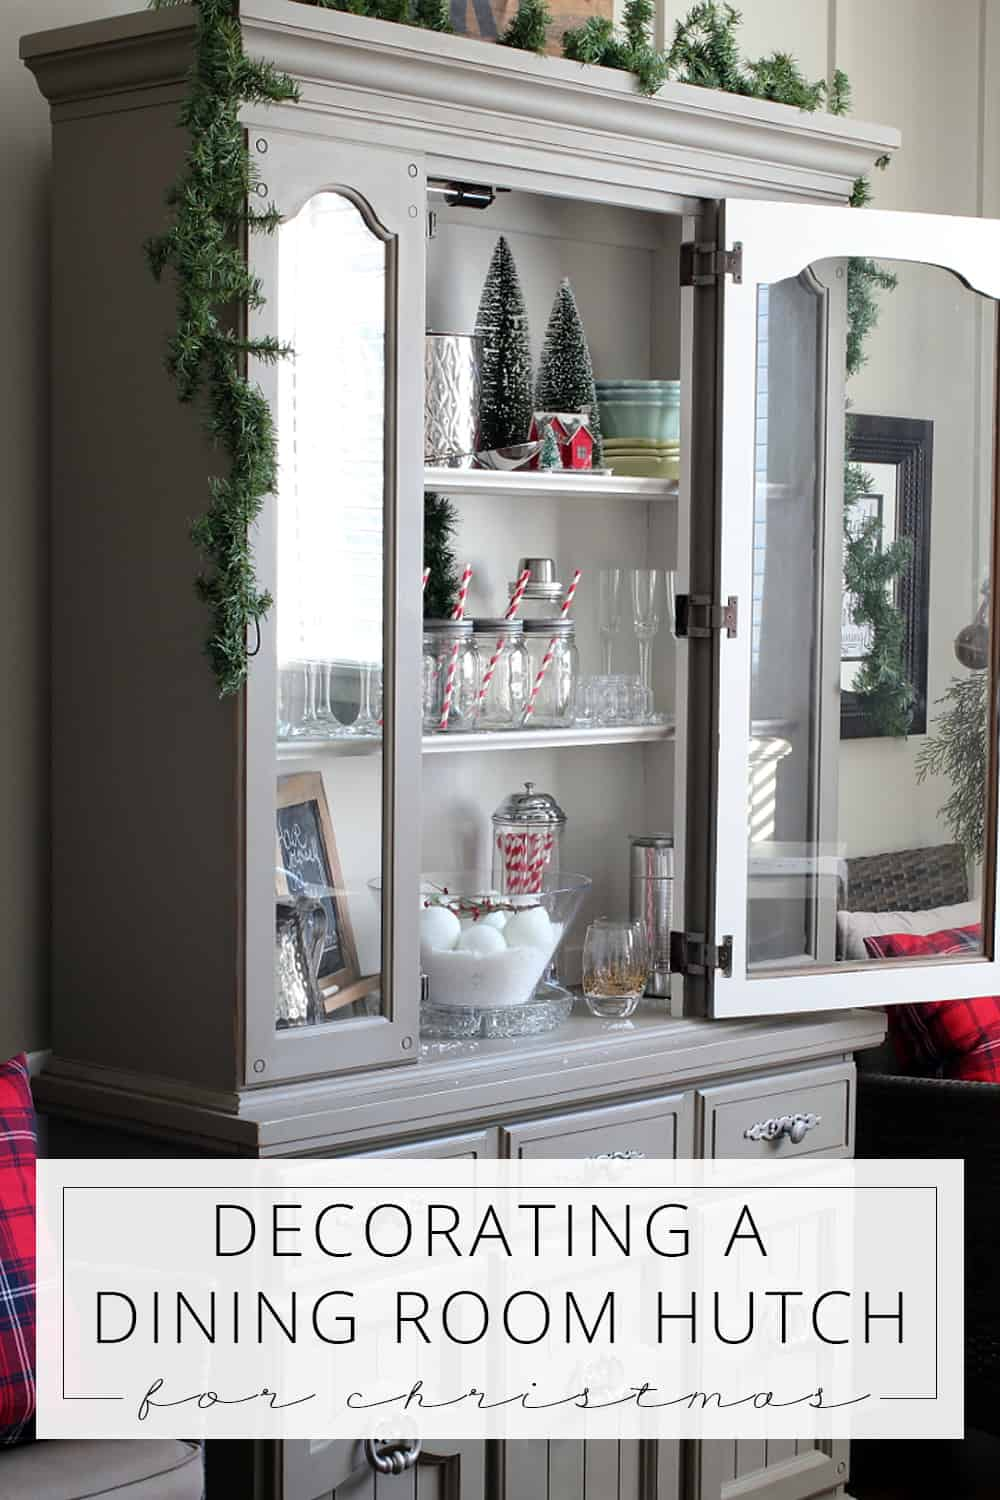 Tips For Decorating A Dining Room Hutch For Christmas: